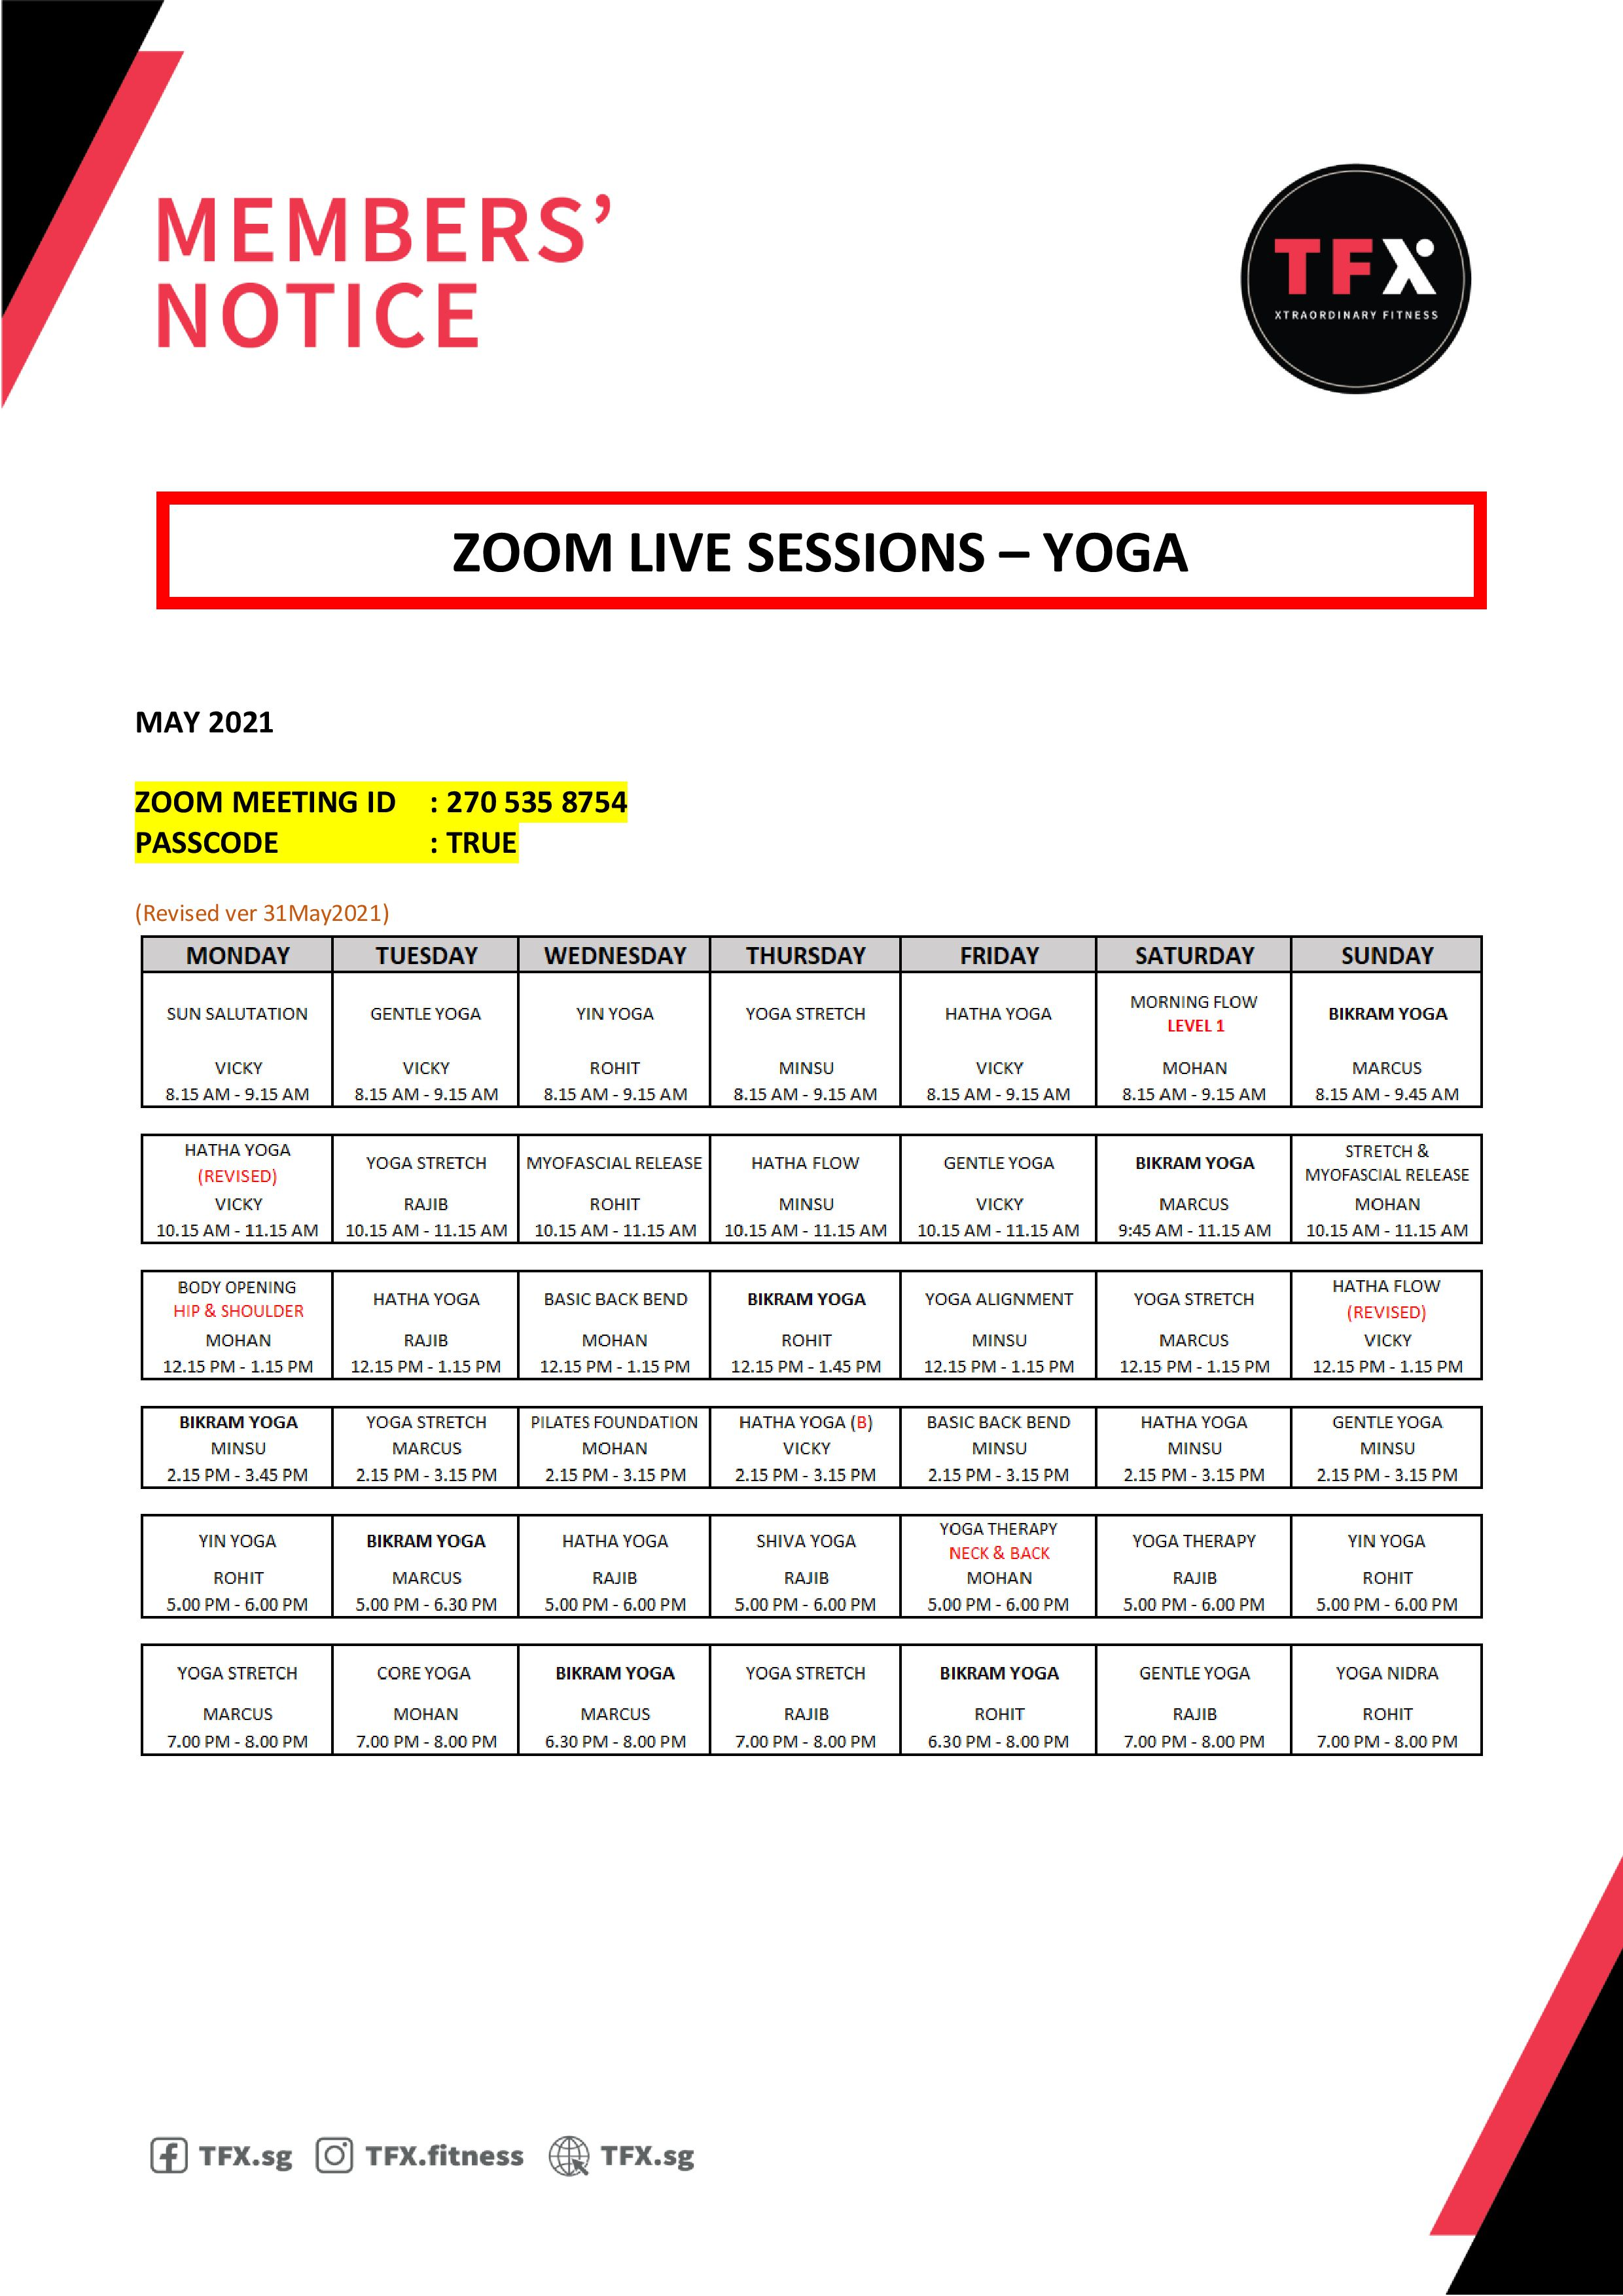 Zoom schedule - Yoga classes (May) (Revision 31 May)